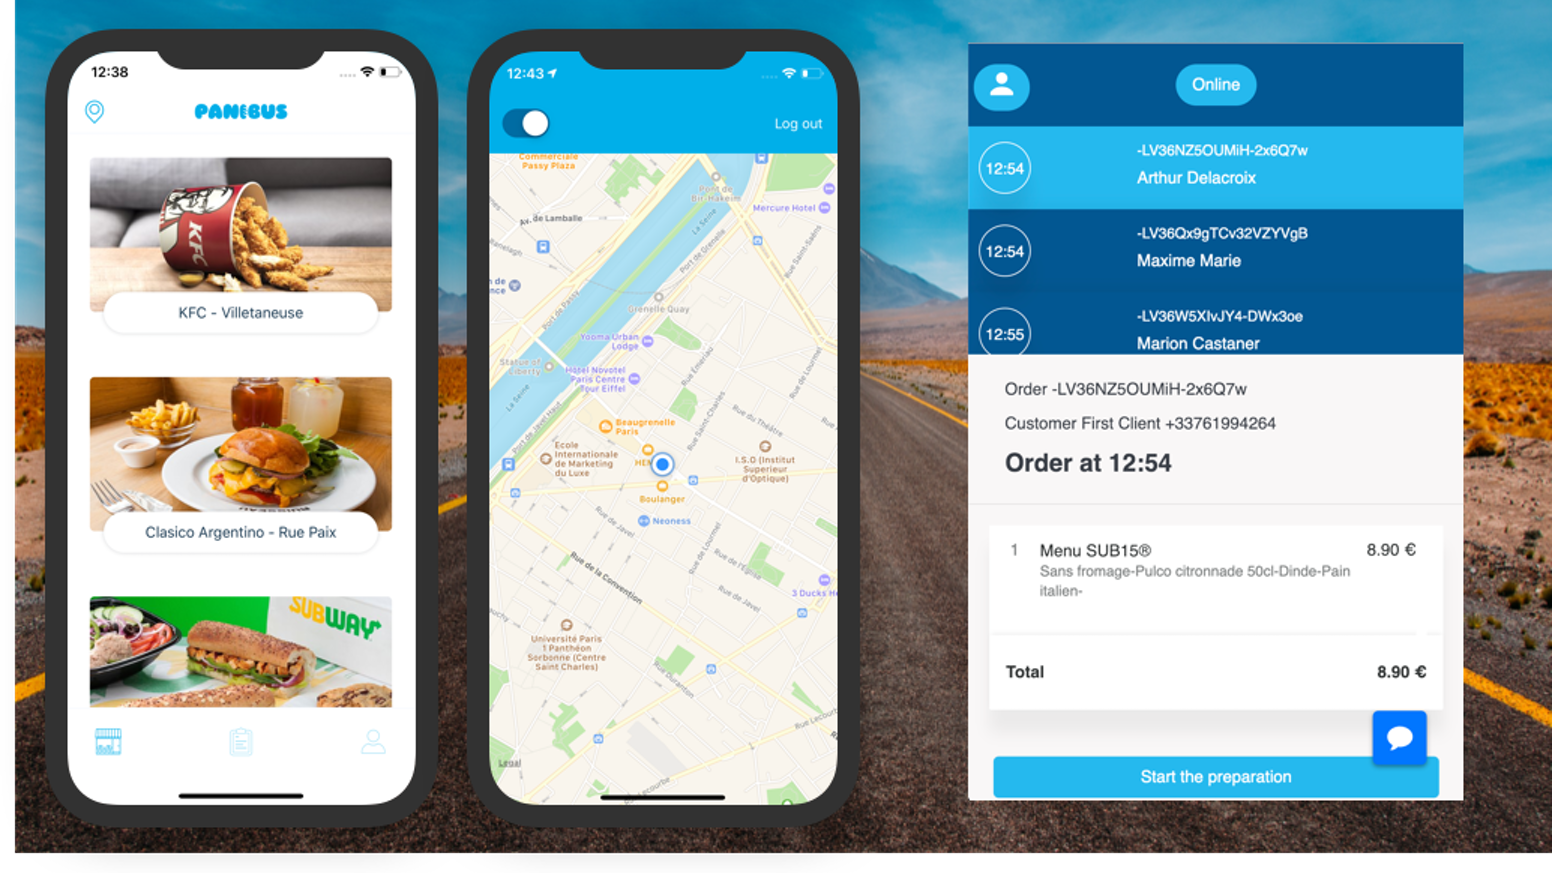 Build a Full Delivery App like Uber Eats & Deliveroo by